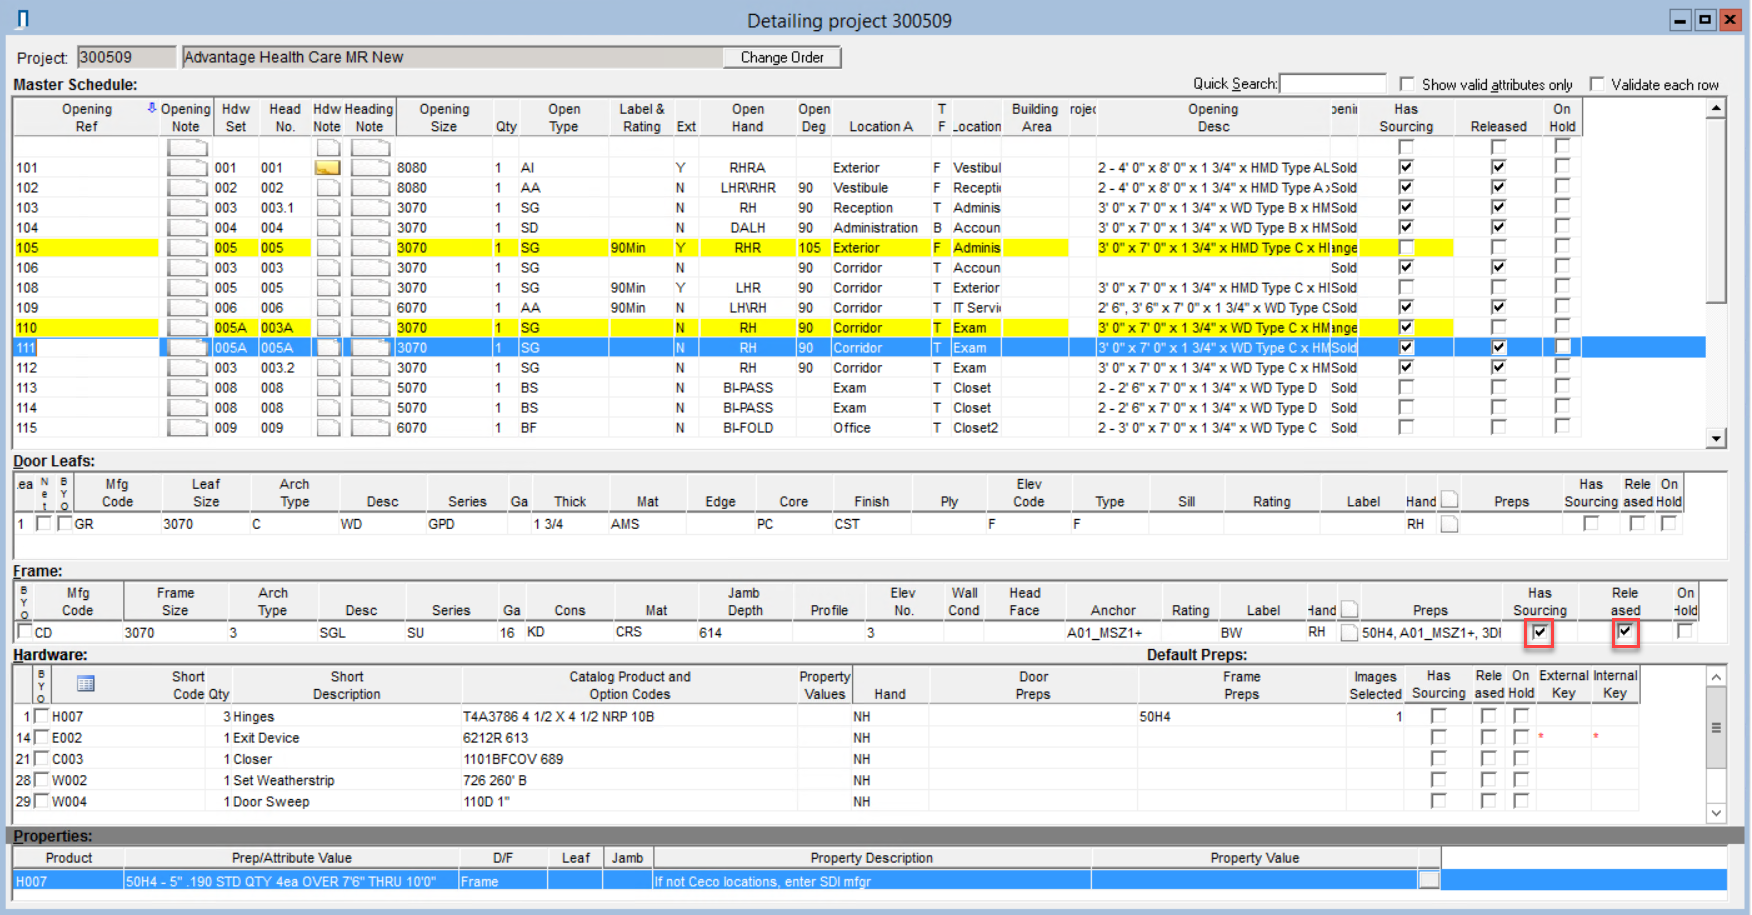 Complete window; shows the location of the Has Sourcing and Released checkboxes in the Frame pane.